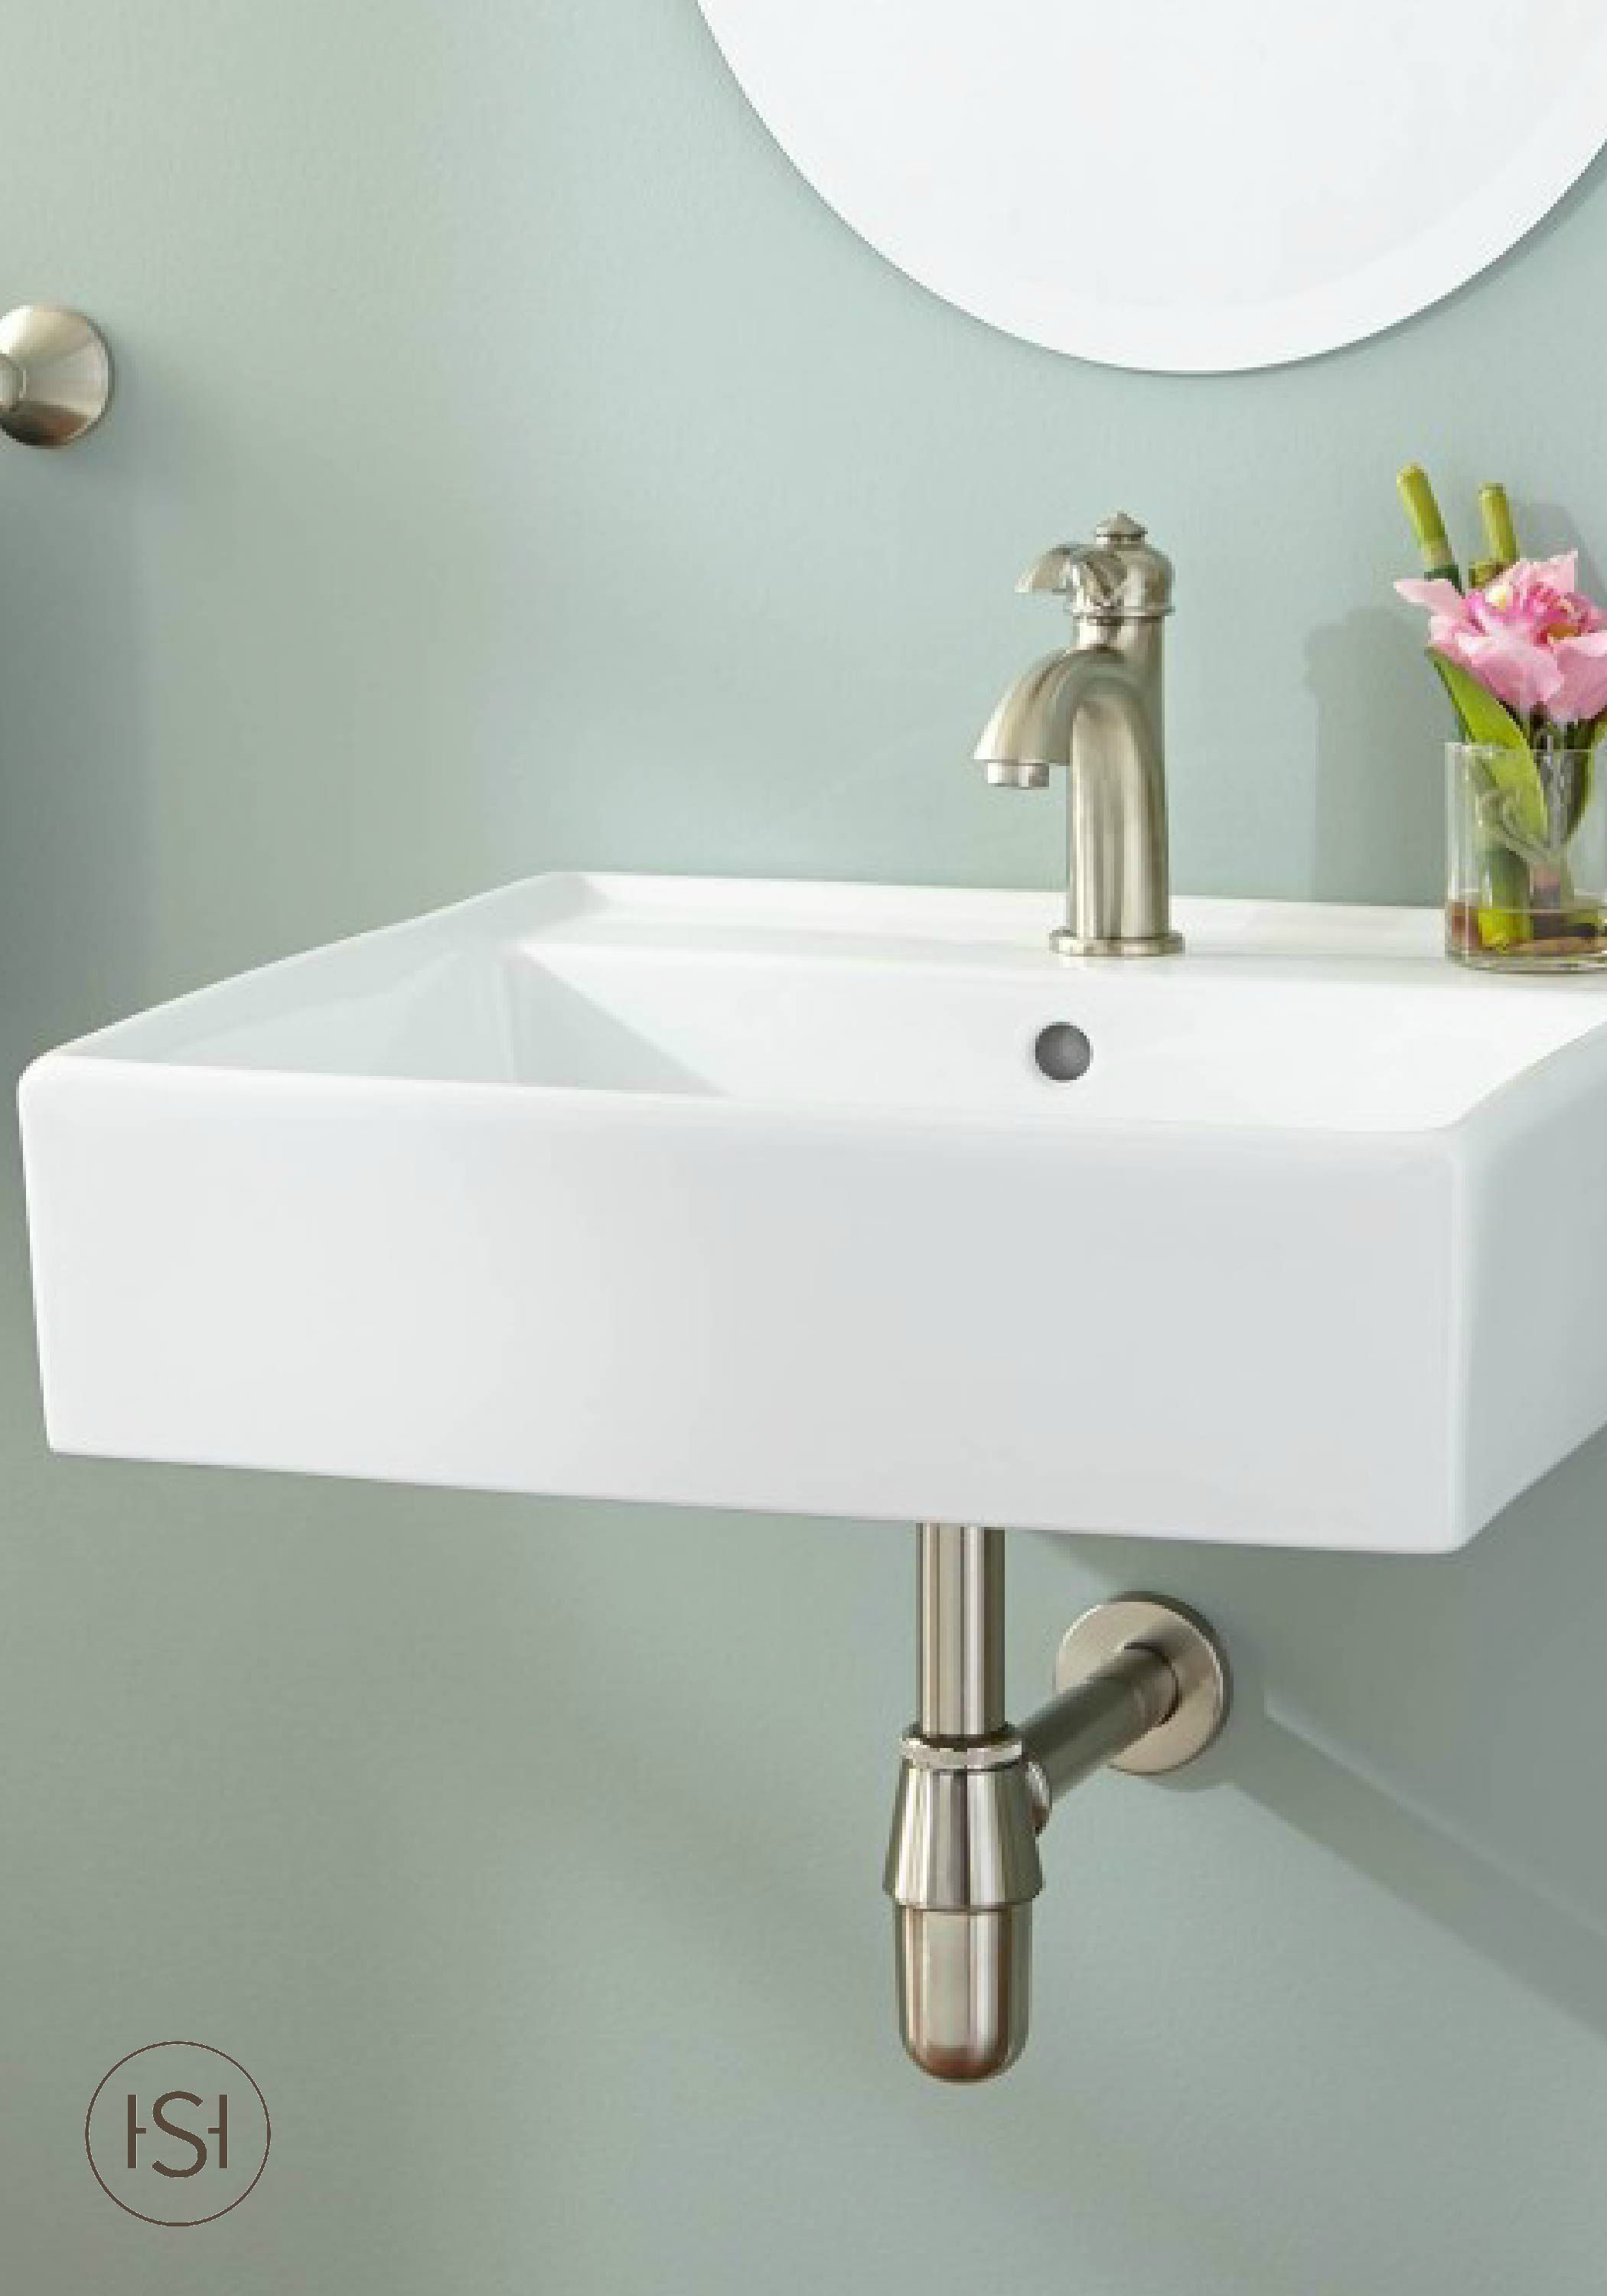 Small wall mounted bathroom sinks - Decorate Your Half Or Guest Bath With An Elegant Wall Mount Sink Featuring A